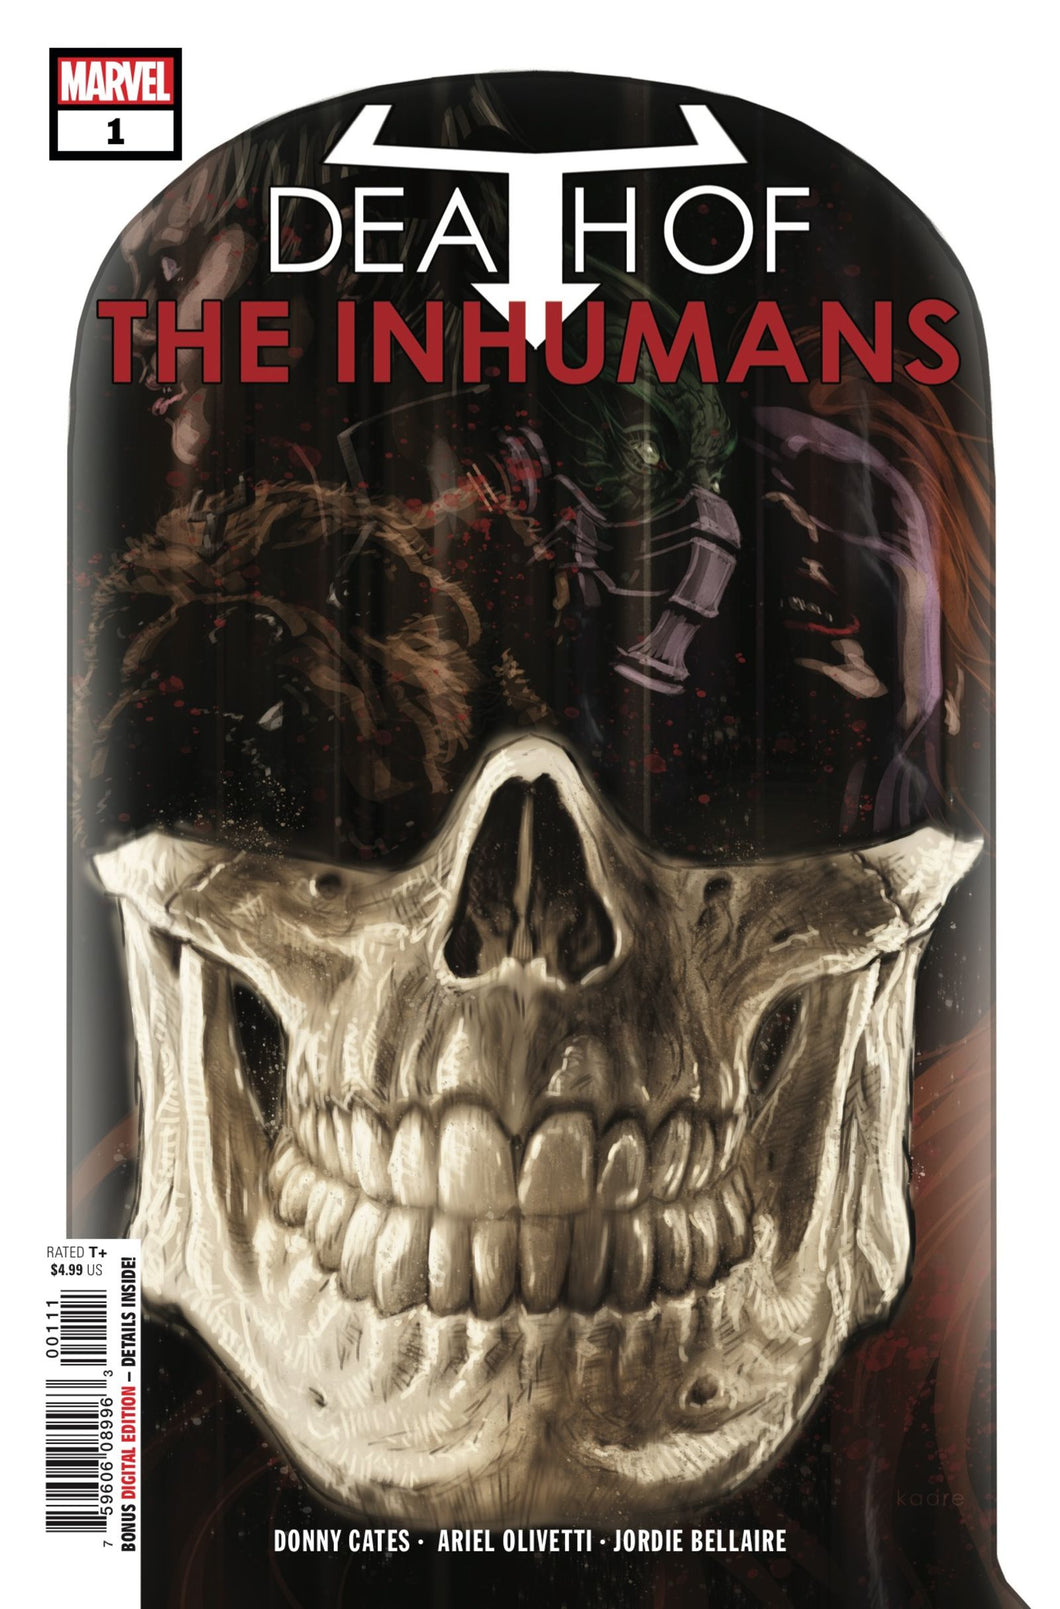 DEATH OF INHUMANS #1 (OF 5) (07/04/2018)